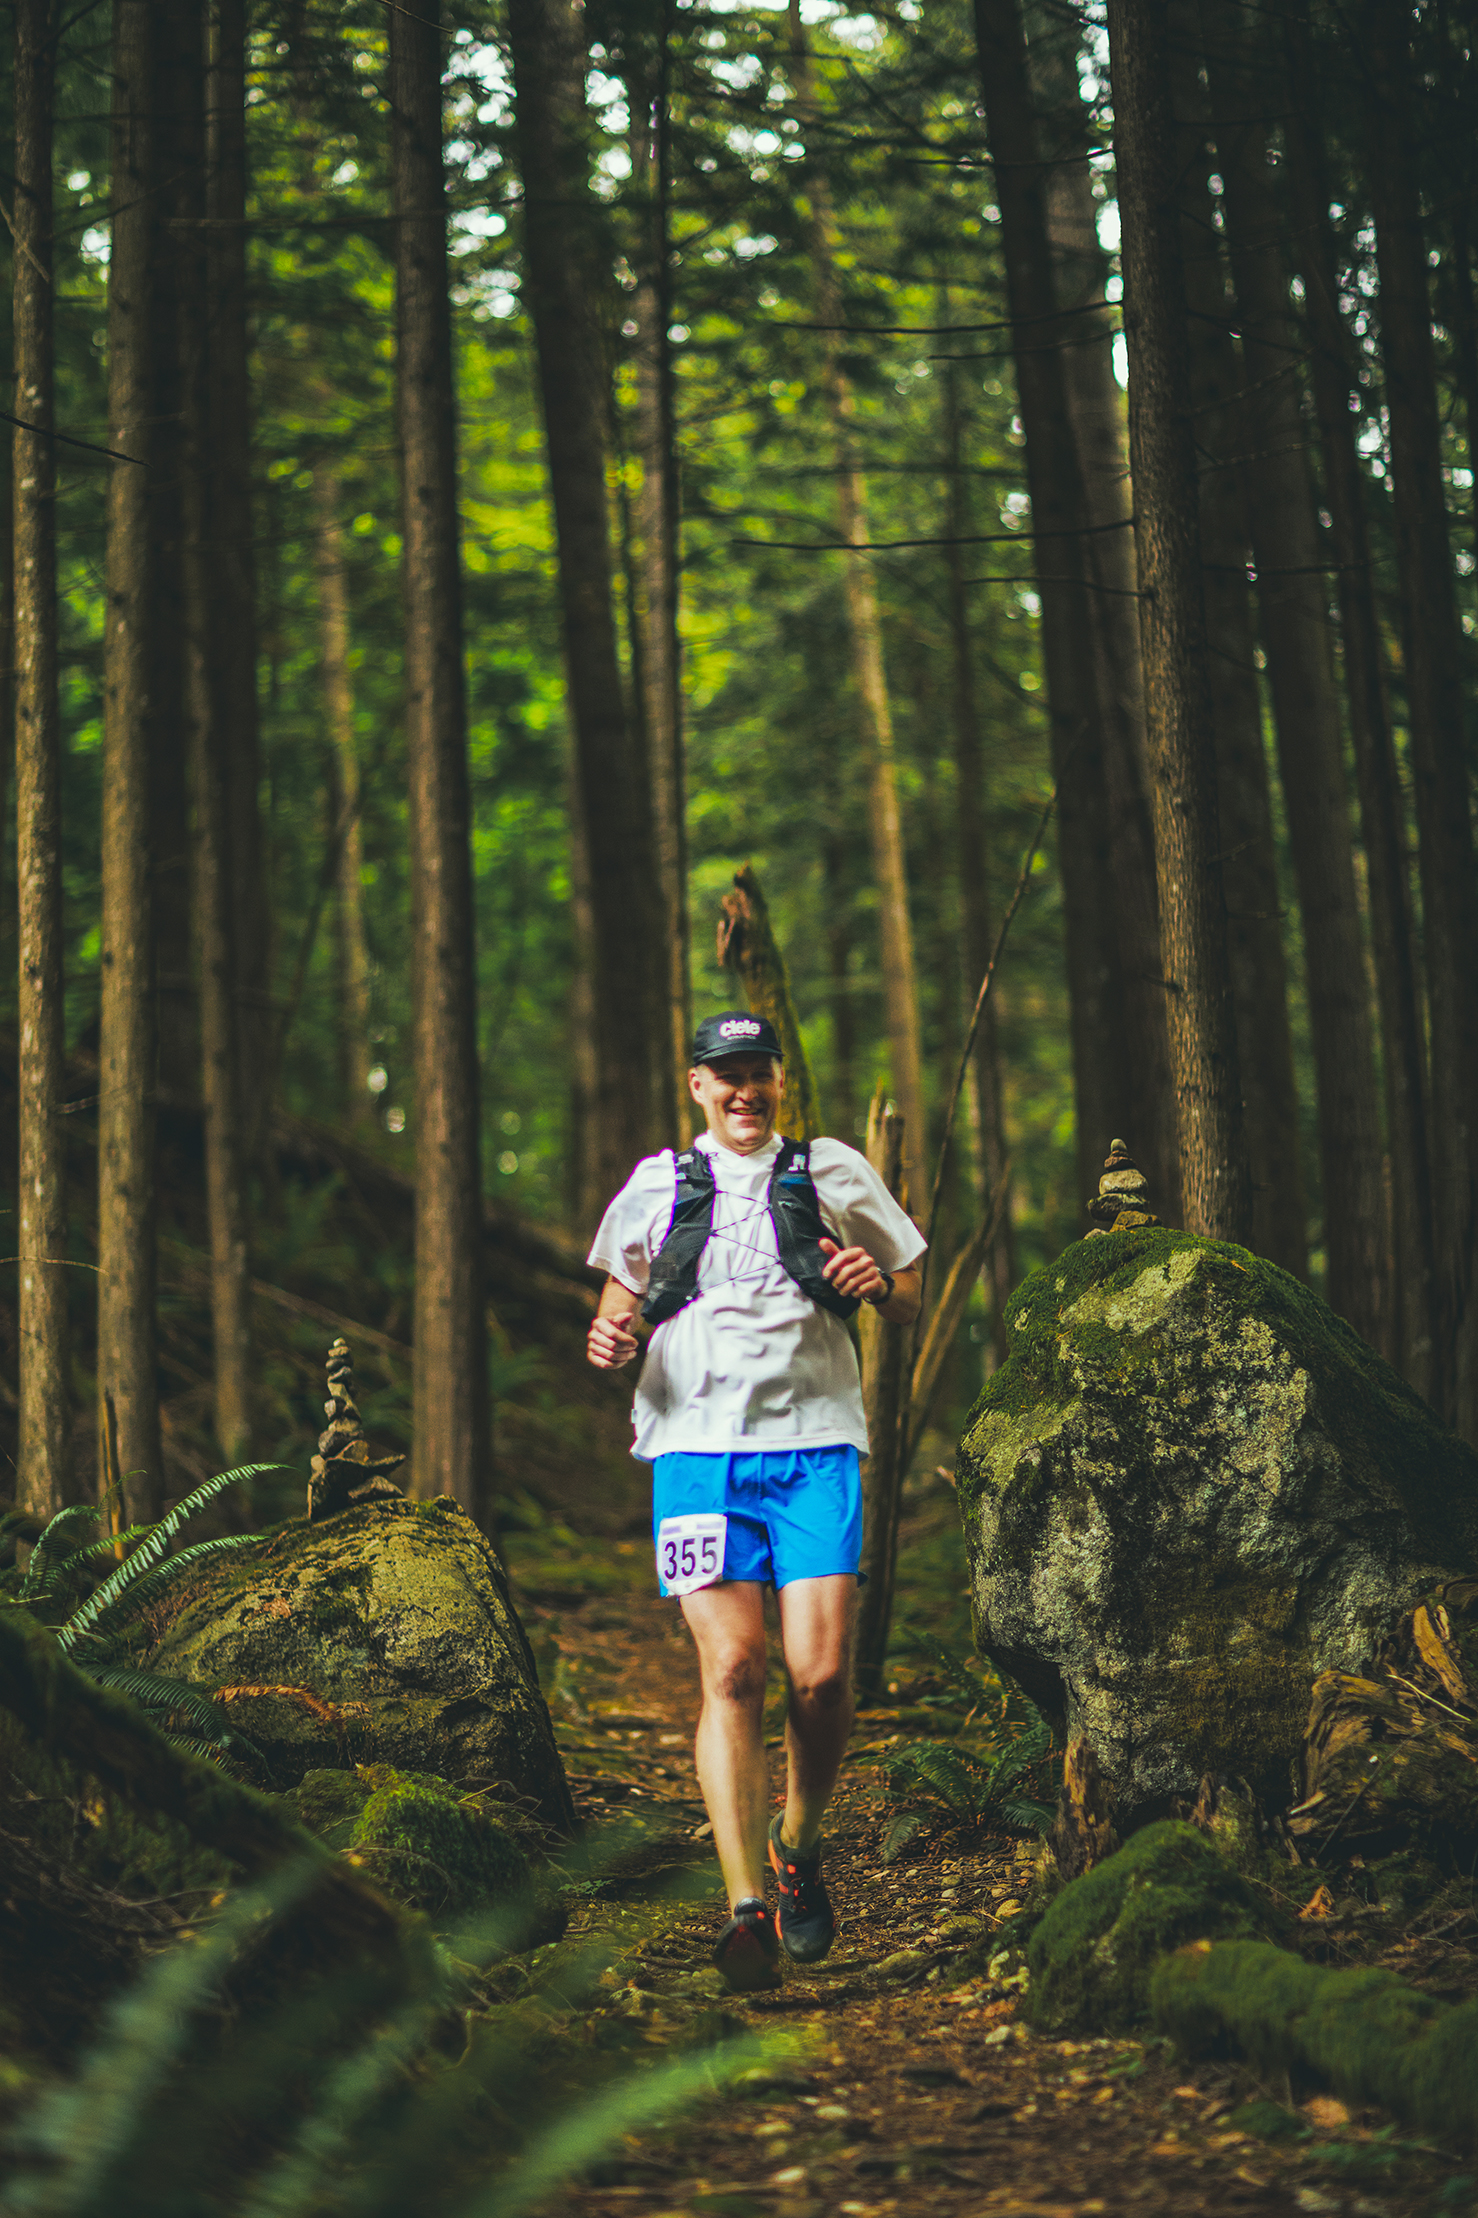 Fraser Valley Trail Races - Bear Mountain - IMG2_2283 by  Brice Ferre Studio - Vancouver Portrait Adventure and Athlete Photographer.jpg